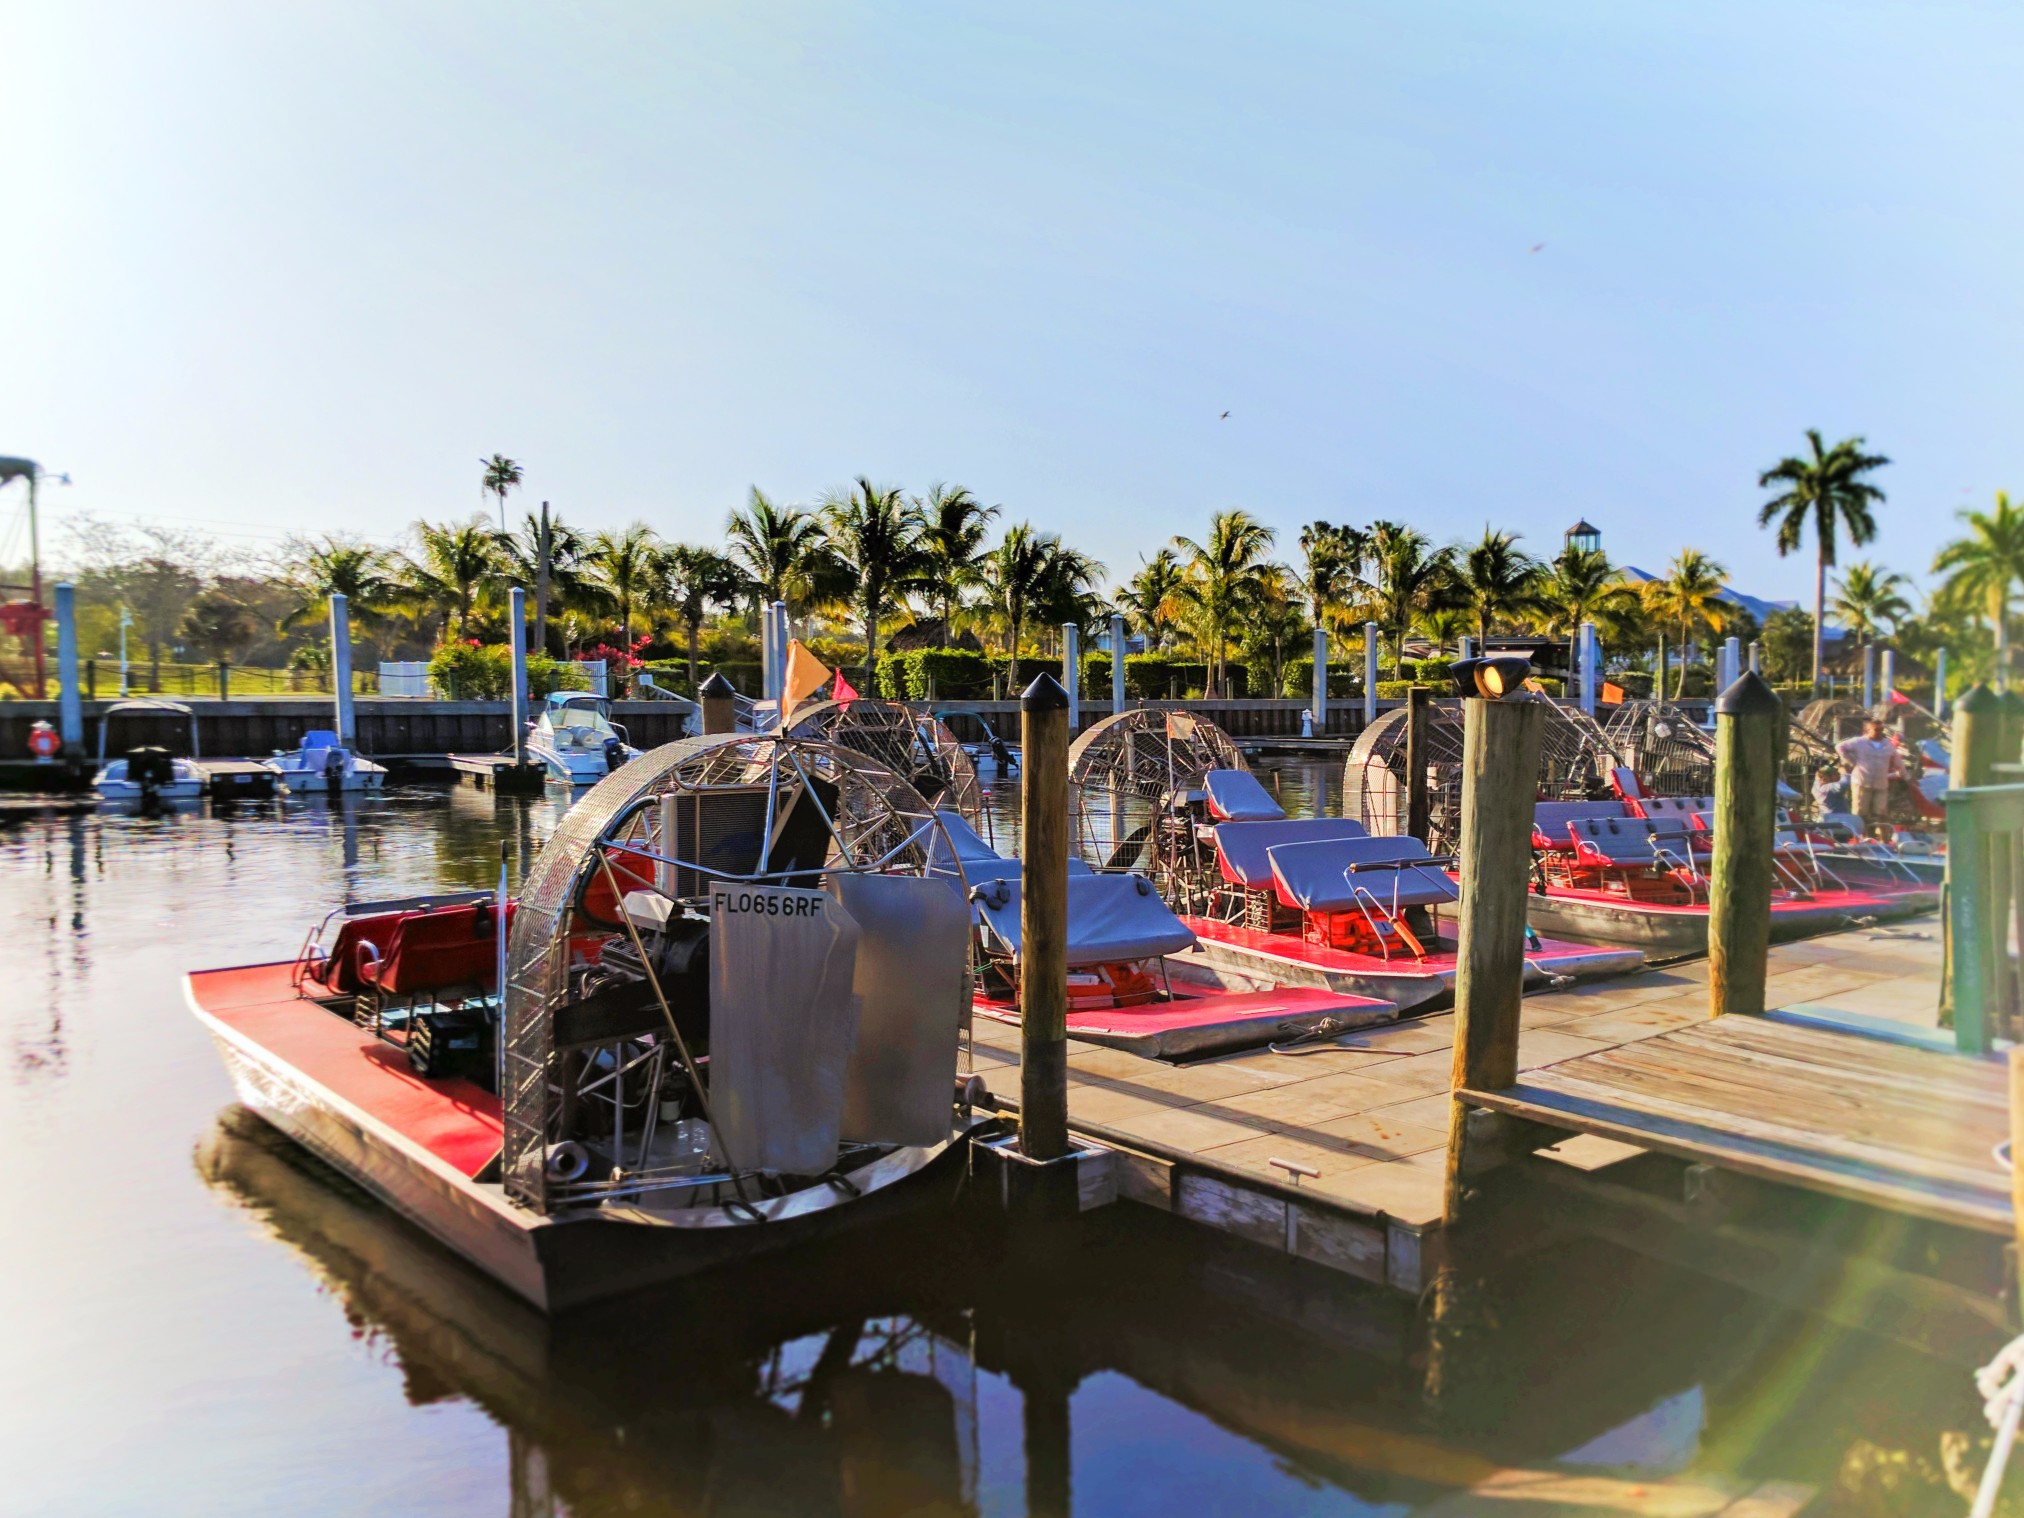 Airboats-docked-in-Everglades-City-Florida-1.jpg